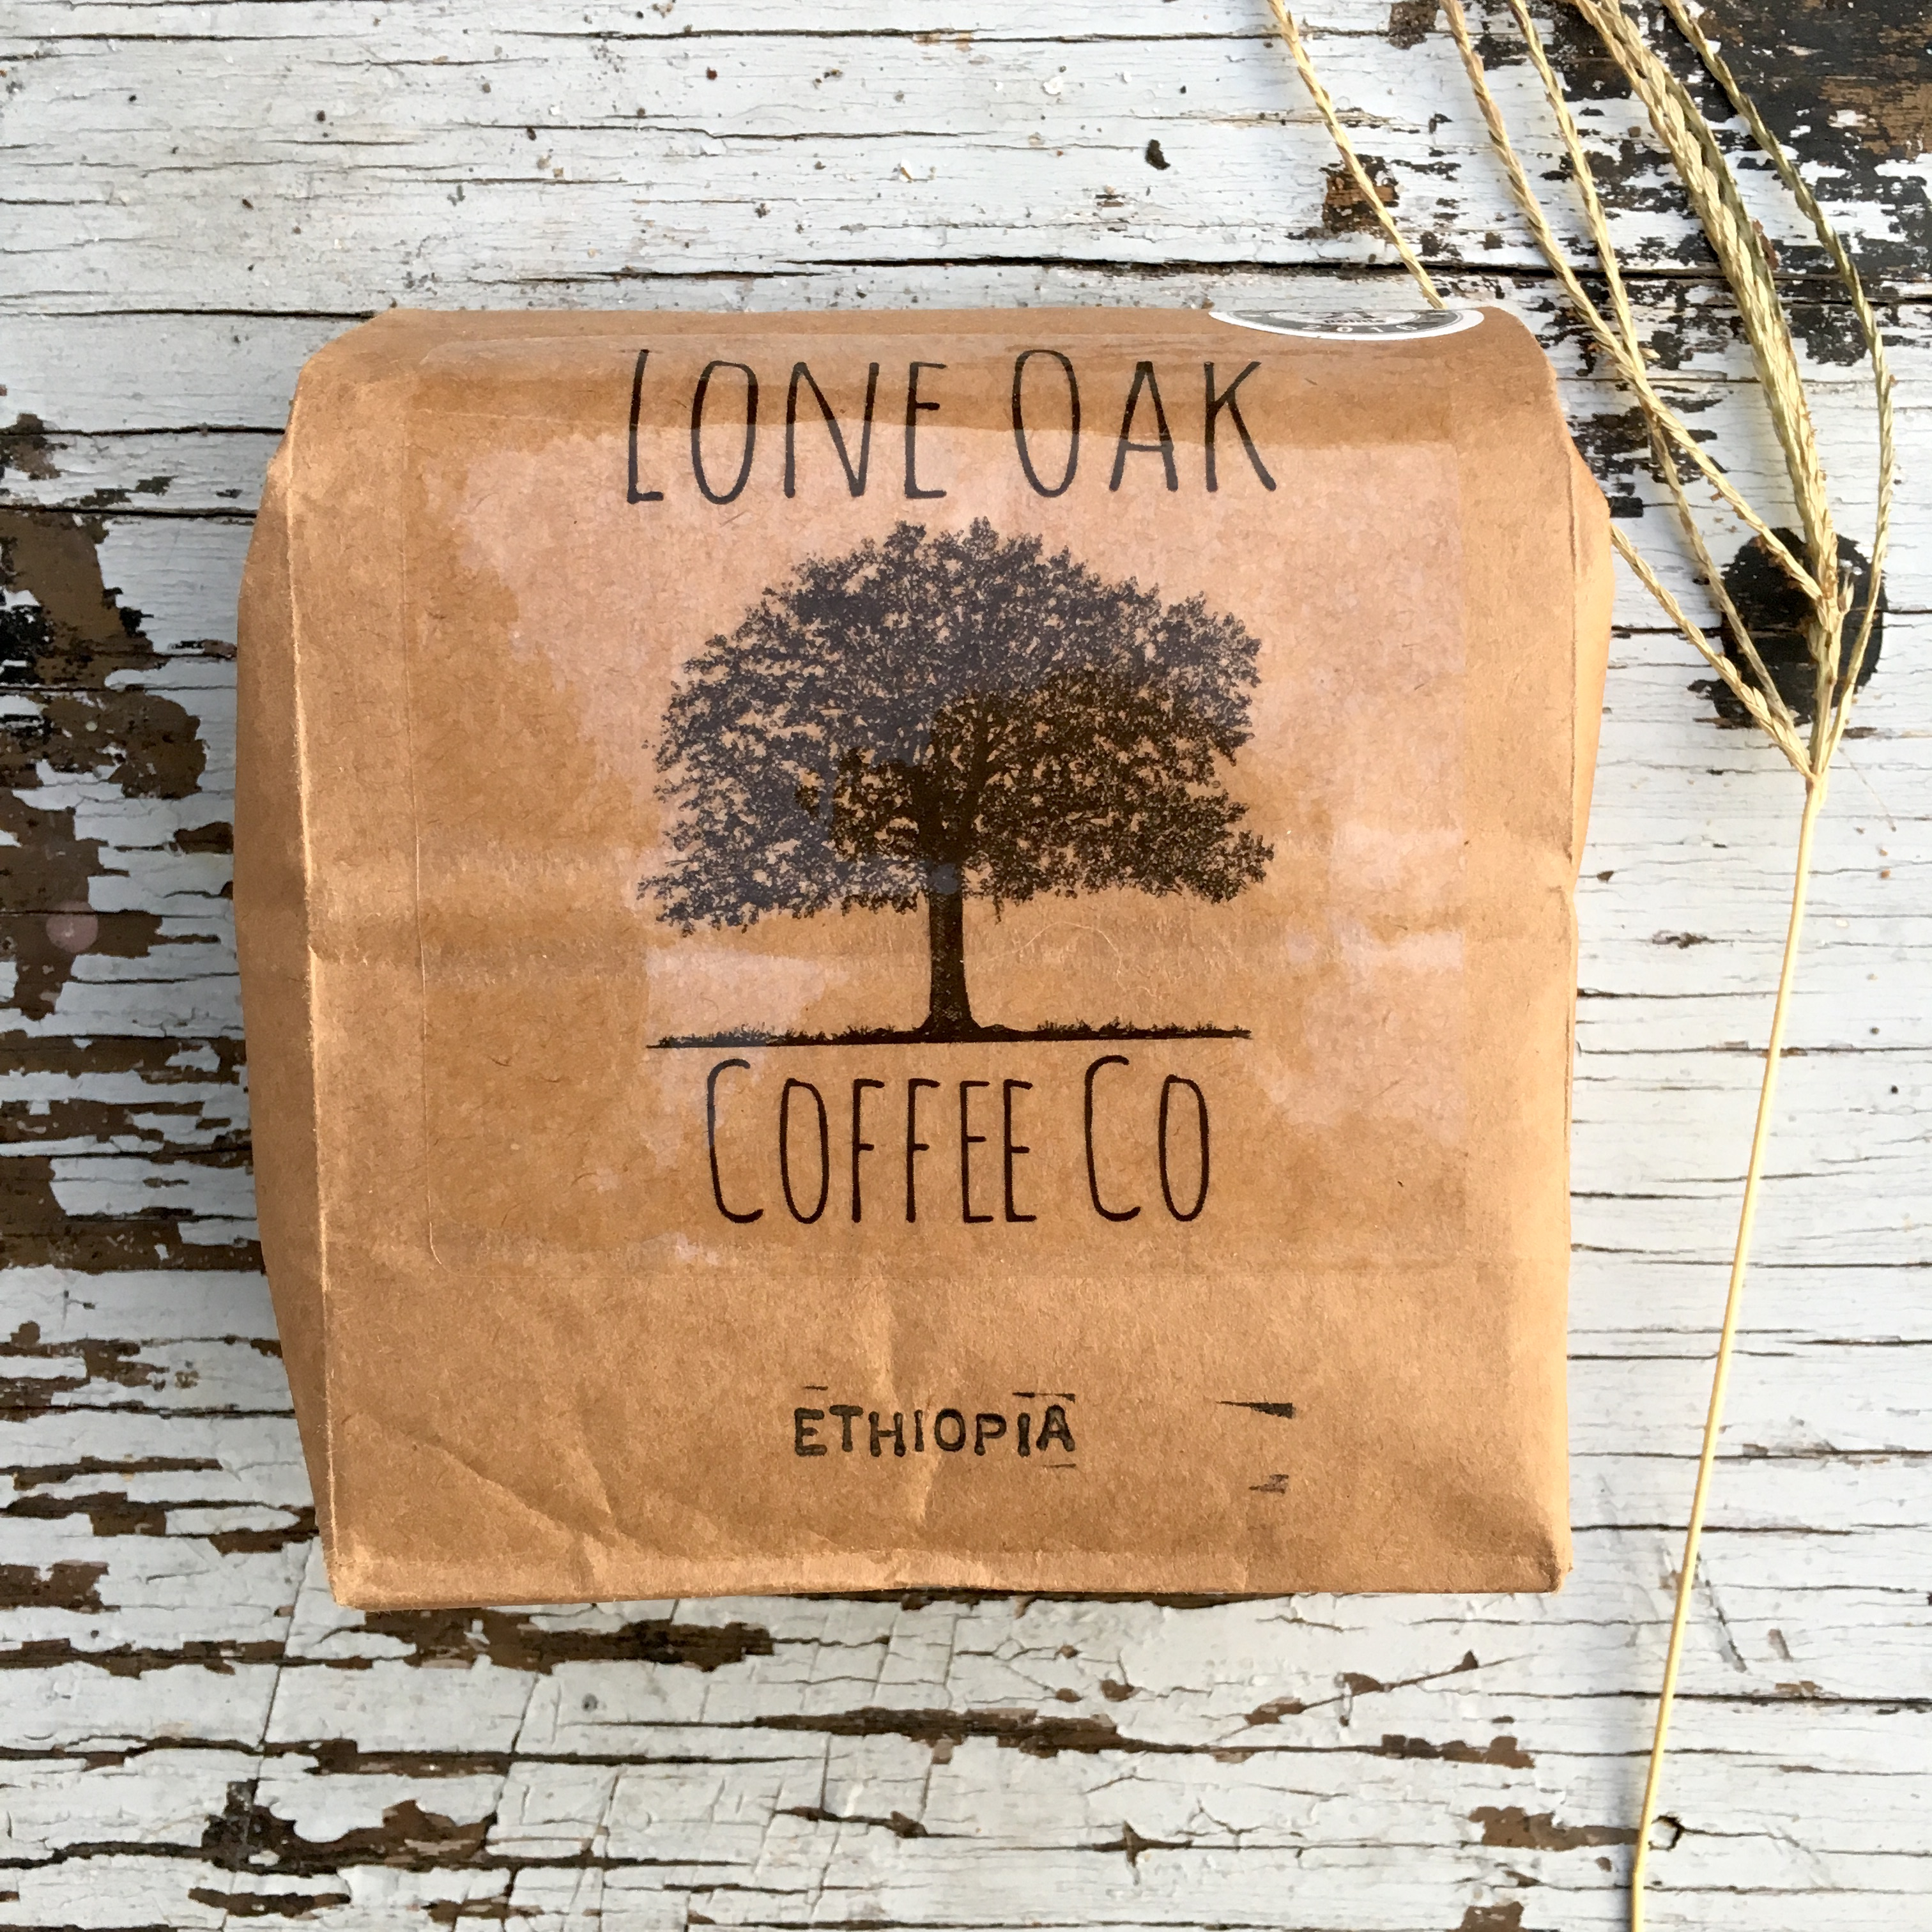 Lone Oak Coffee Co. Ethiopia